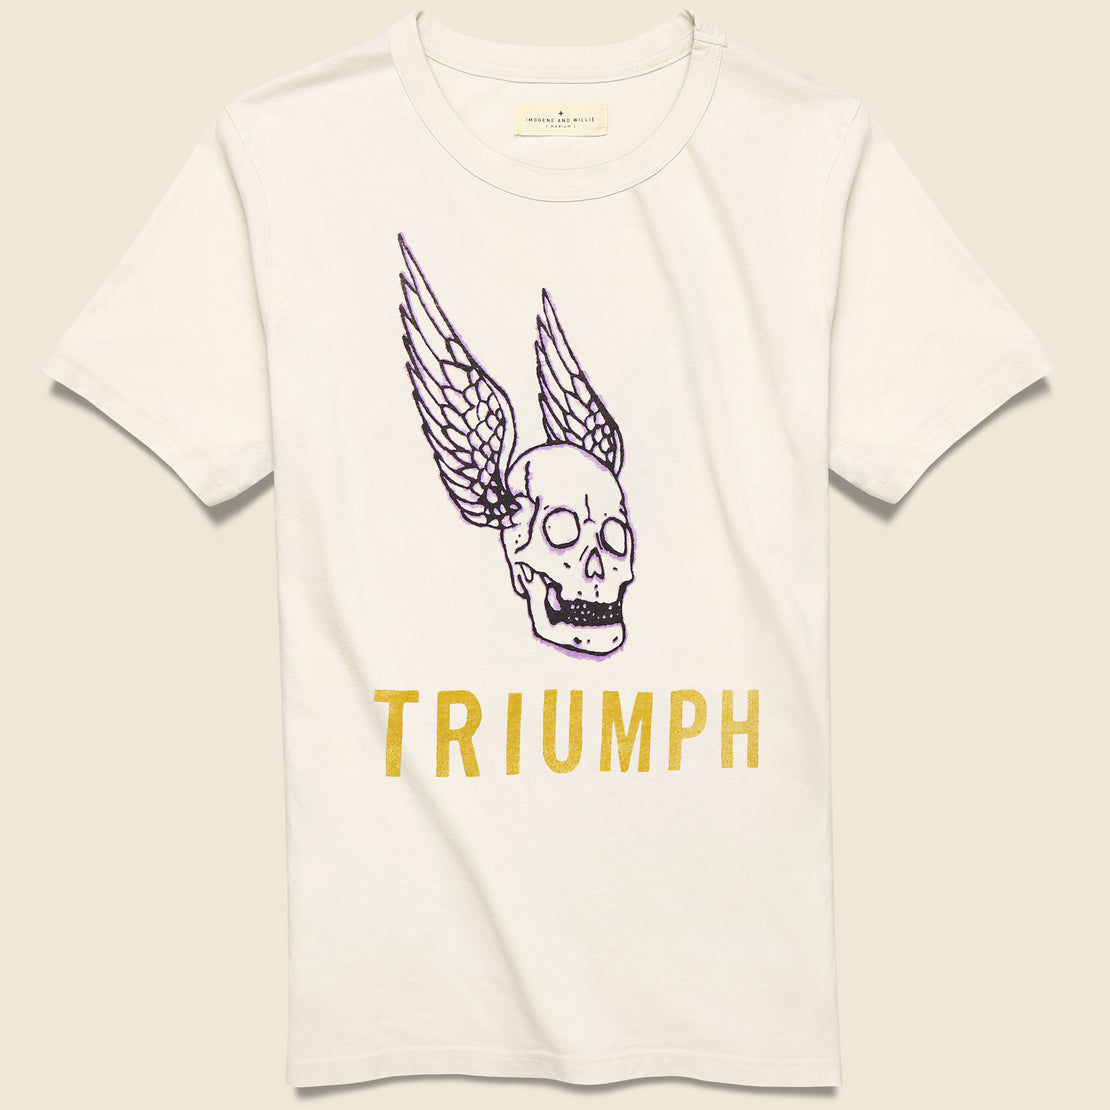 Imogene + Willie Triumph Tee - White